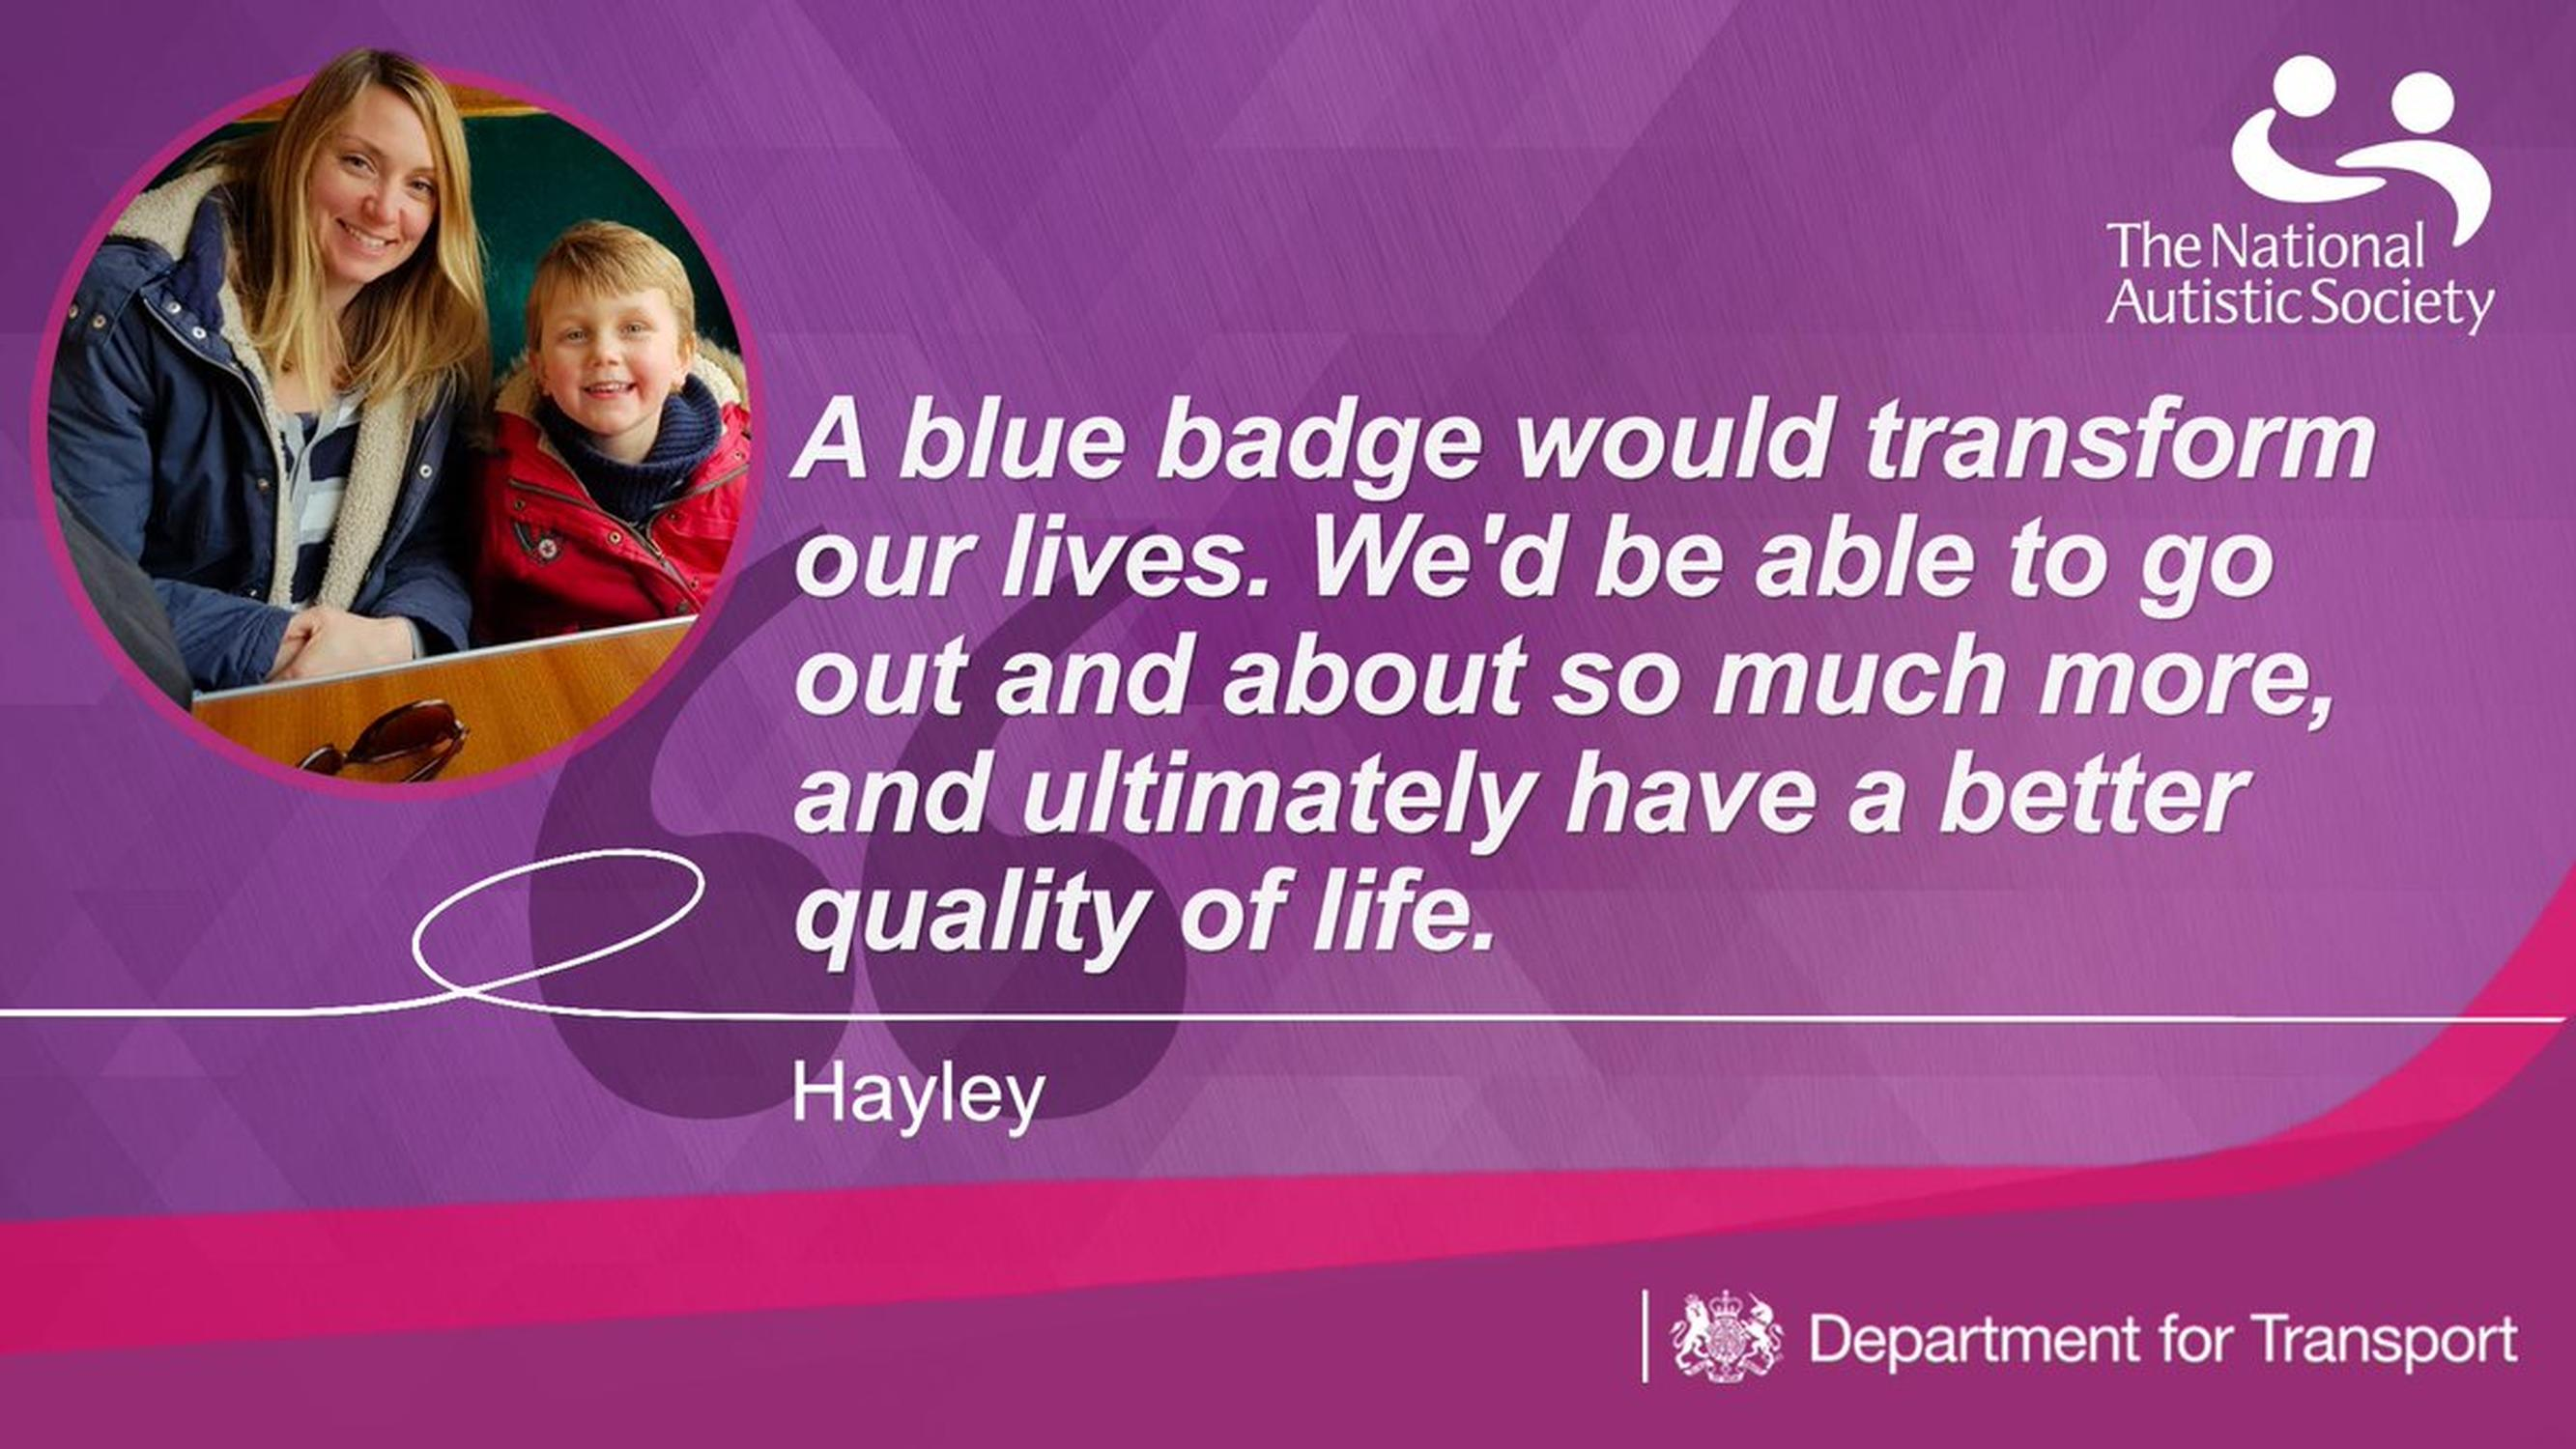 A DfT message about the Blue Badge reforms promoted on Twitter